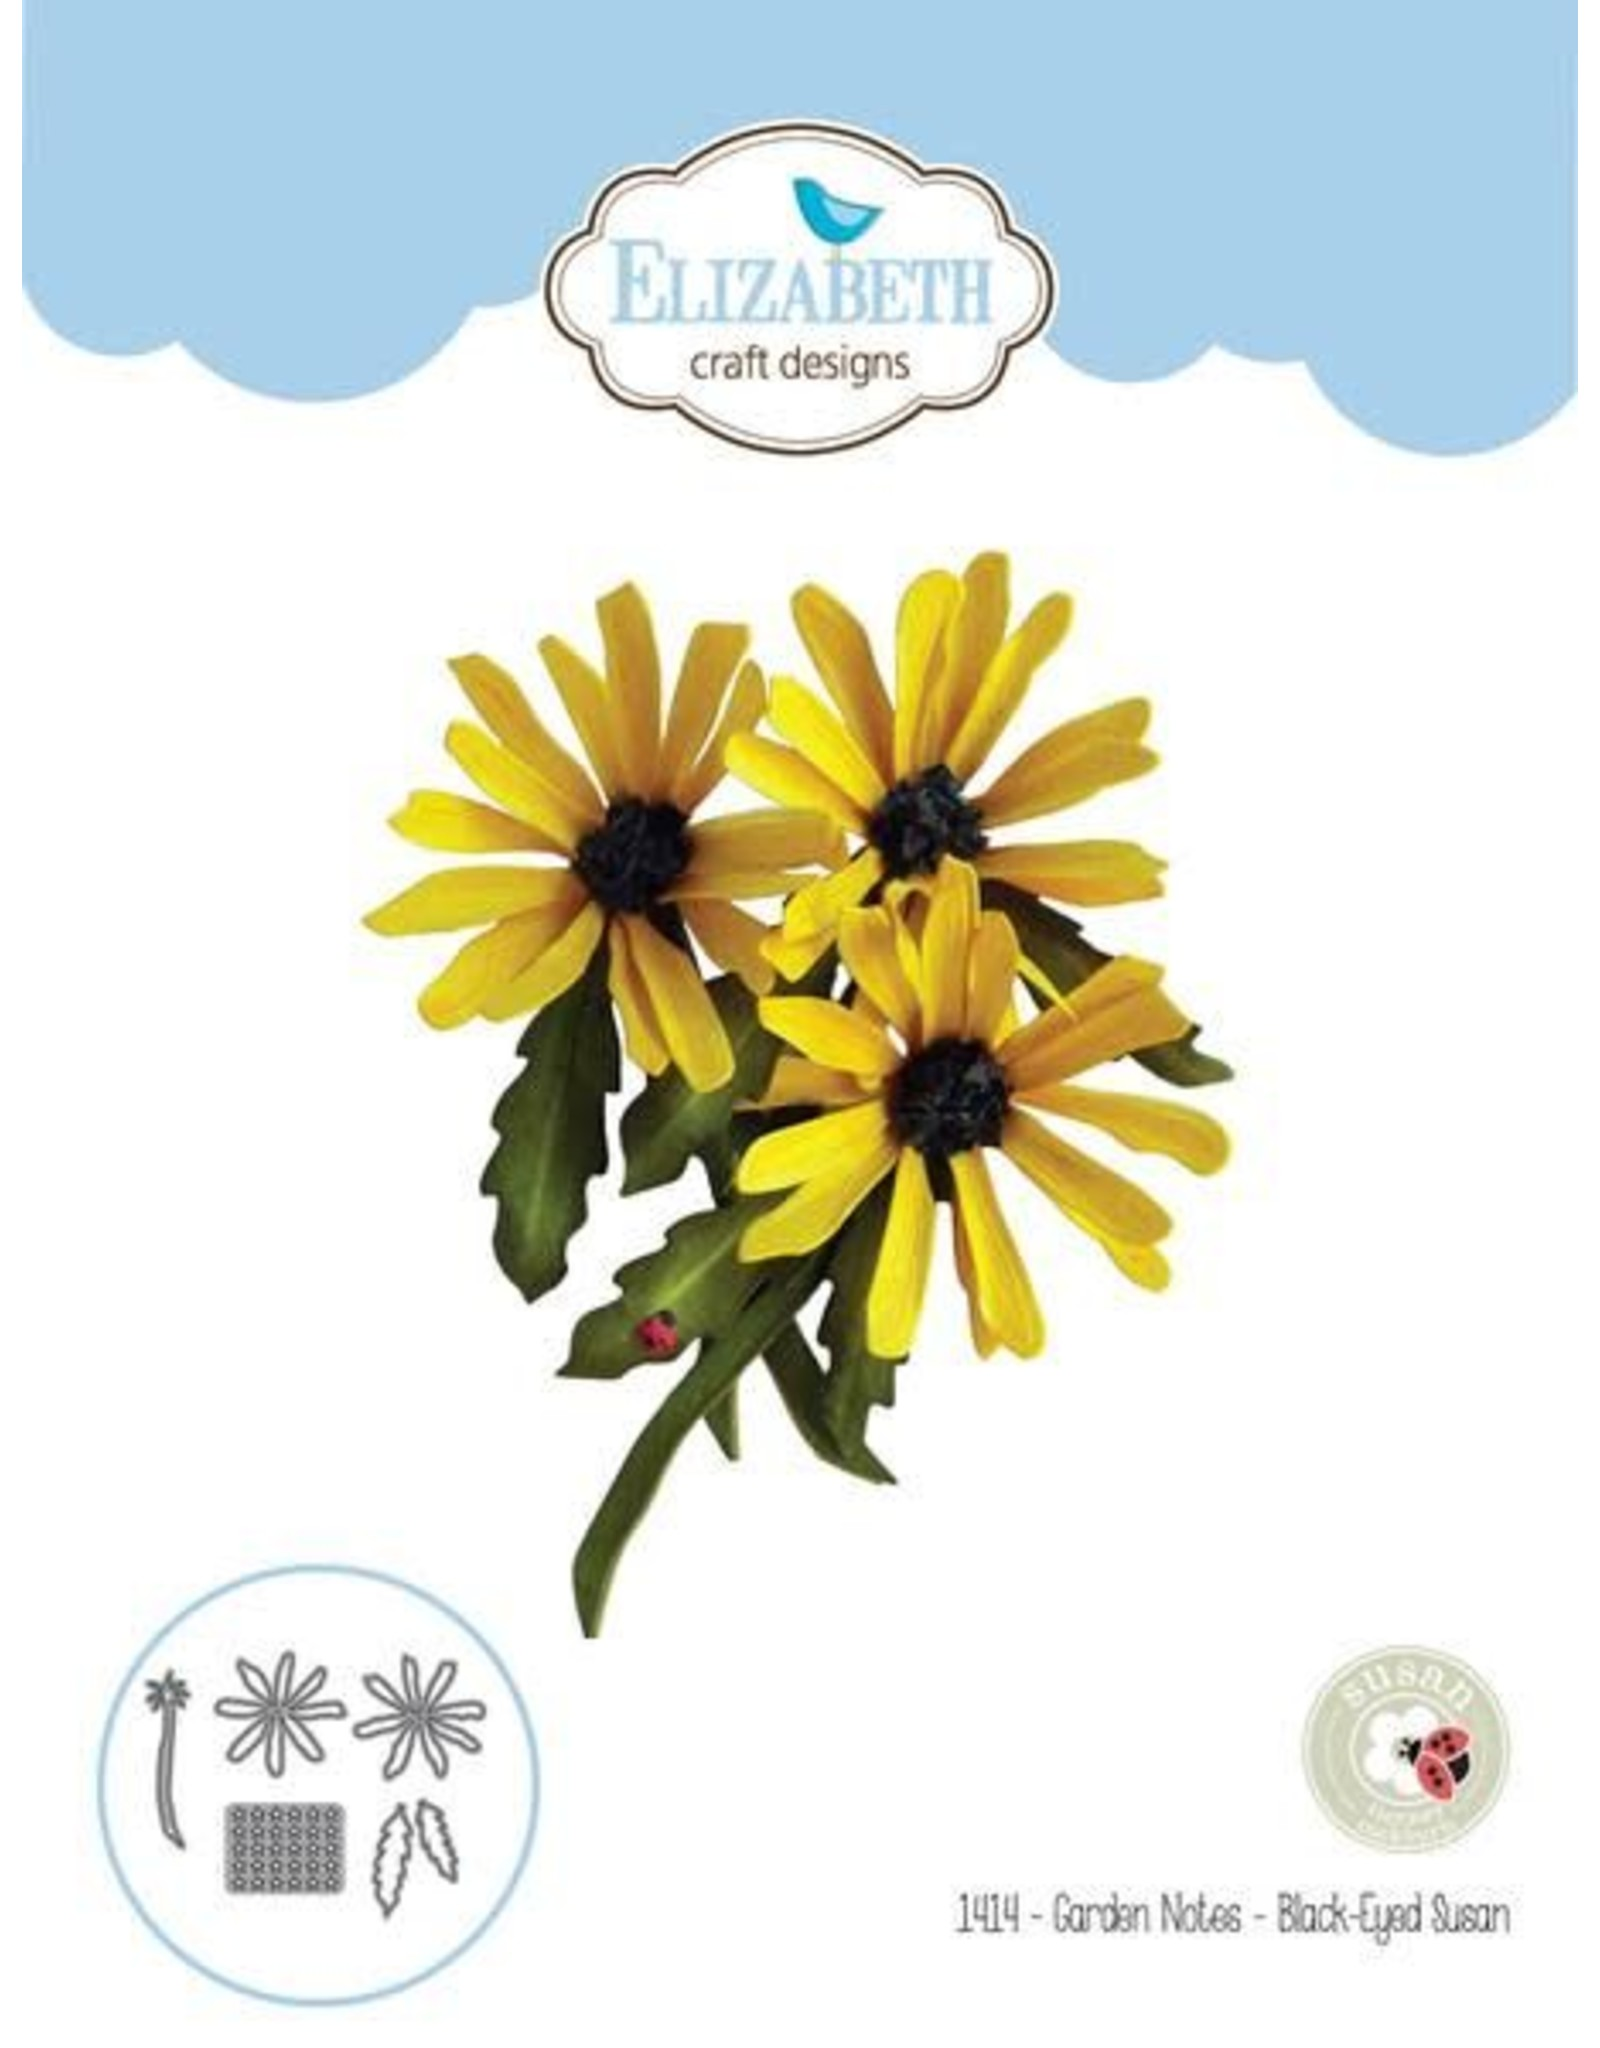 Elizabeth Craft Designs Elizabeth Craft Designs dies Garden Notes - Black-Eyed Susan 1414